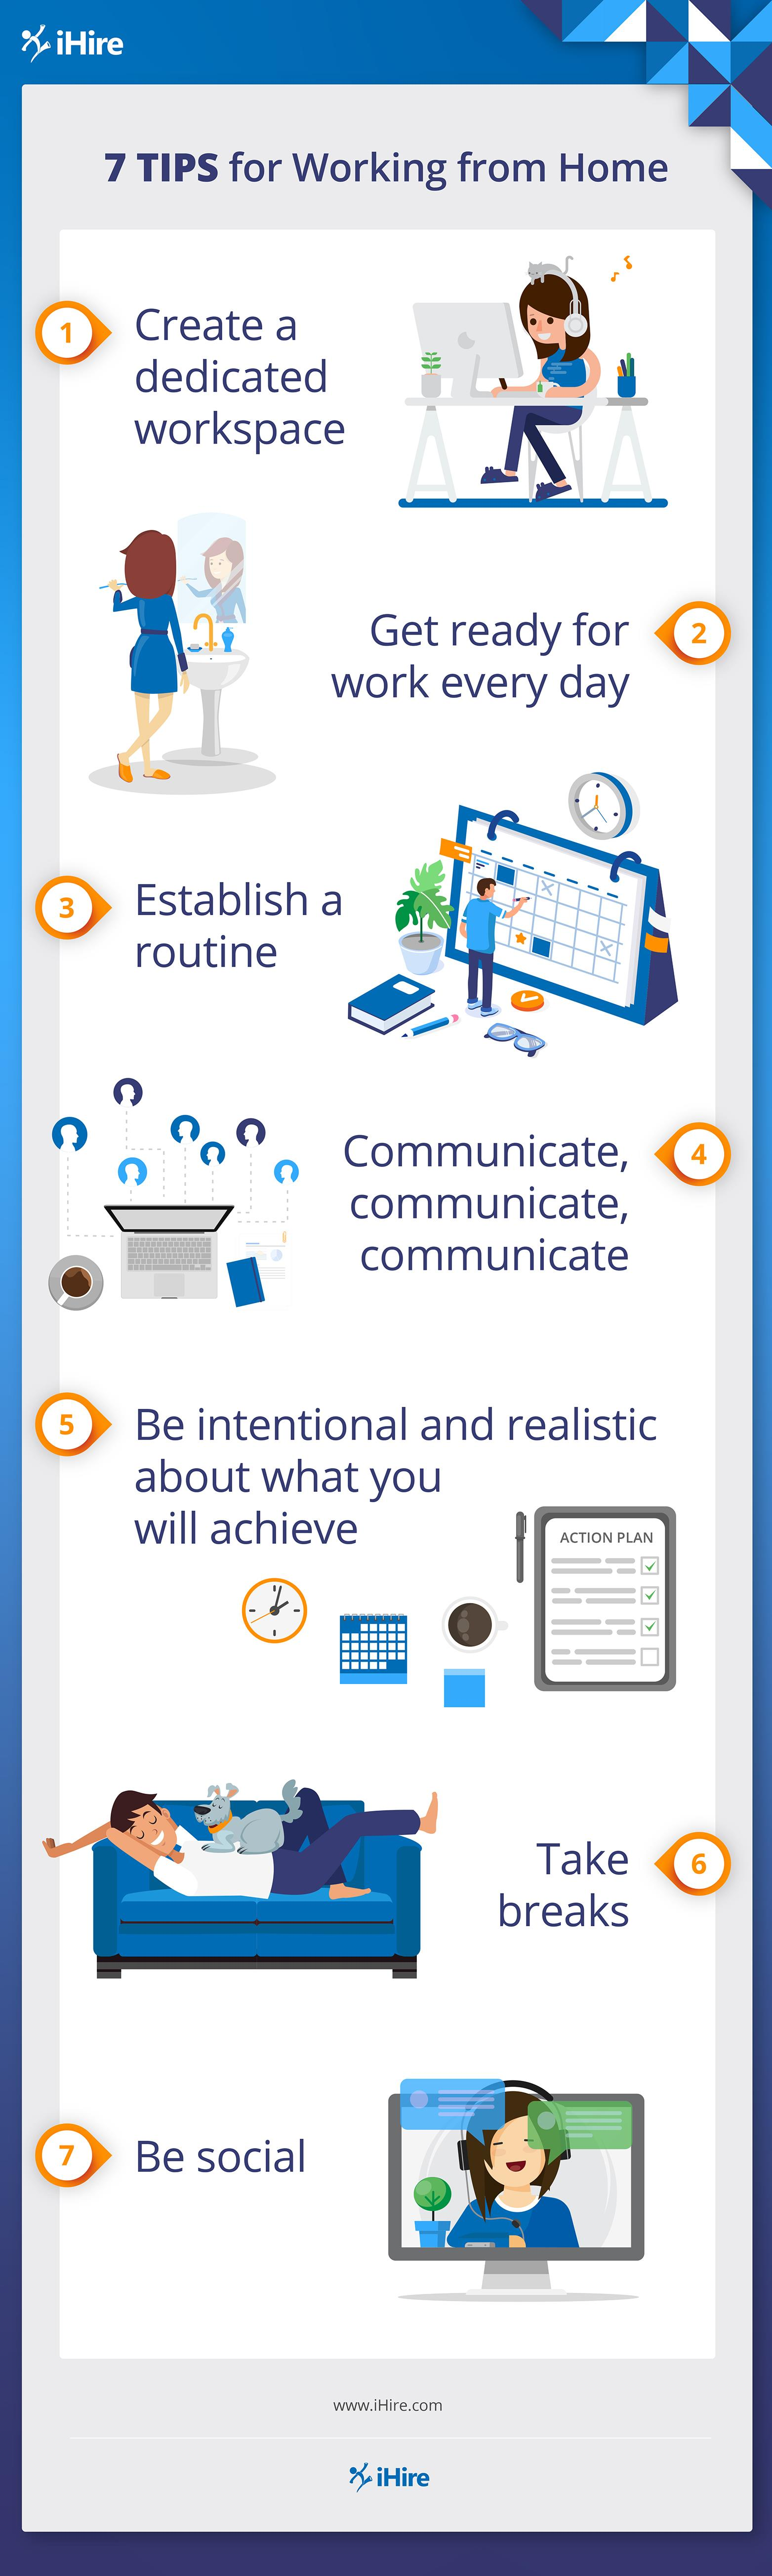 infographic with tips for working from home